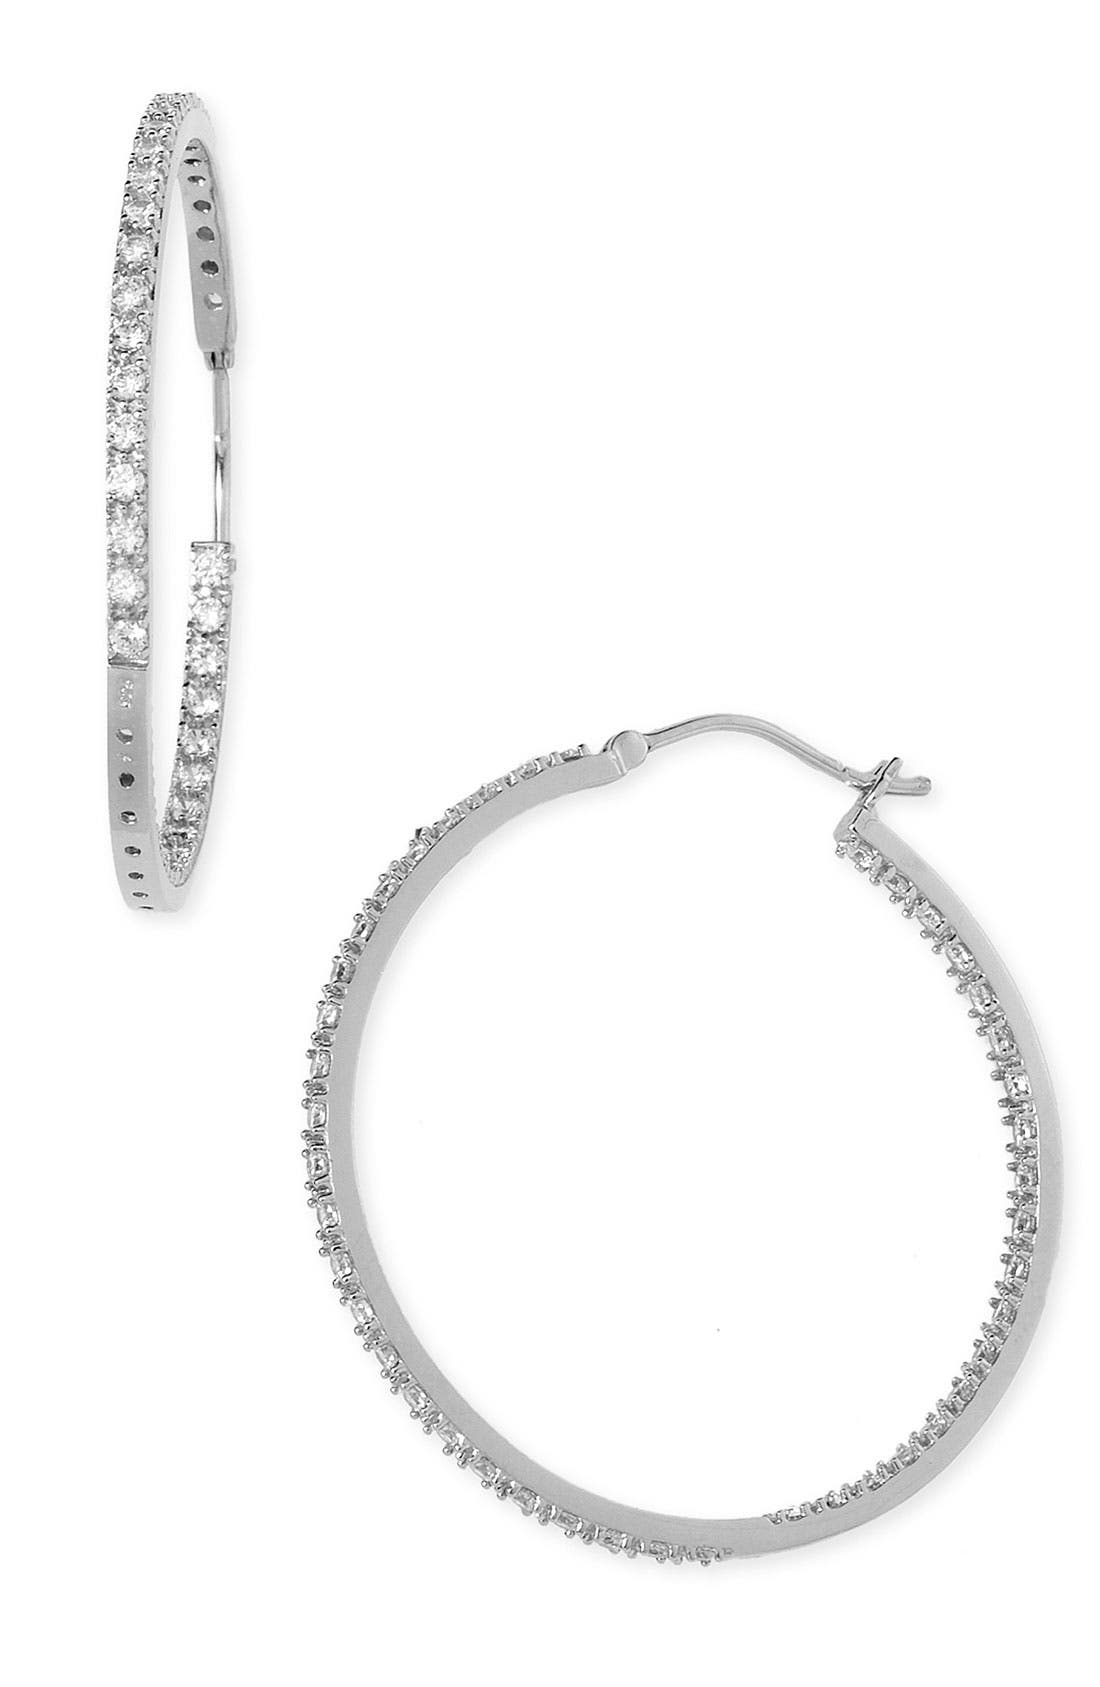 Main Image - Nordstrom 'Inside Out' Cubic Zirconia Hoop Earrings